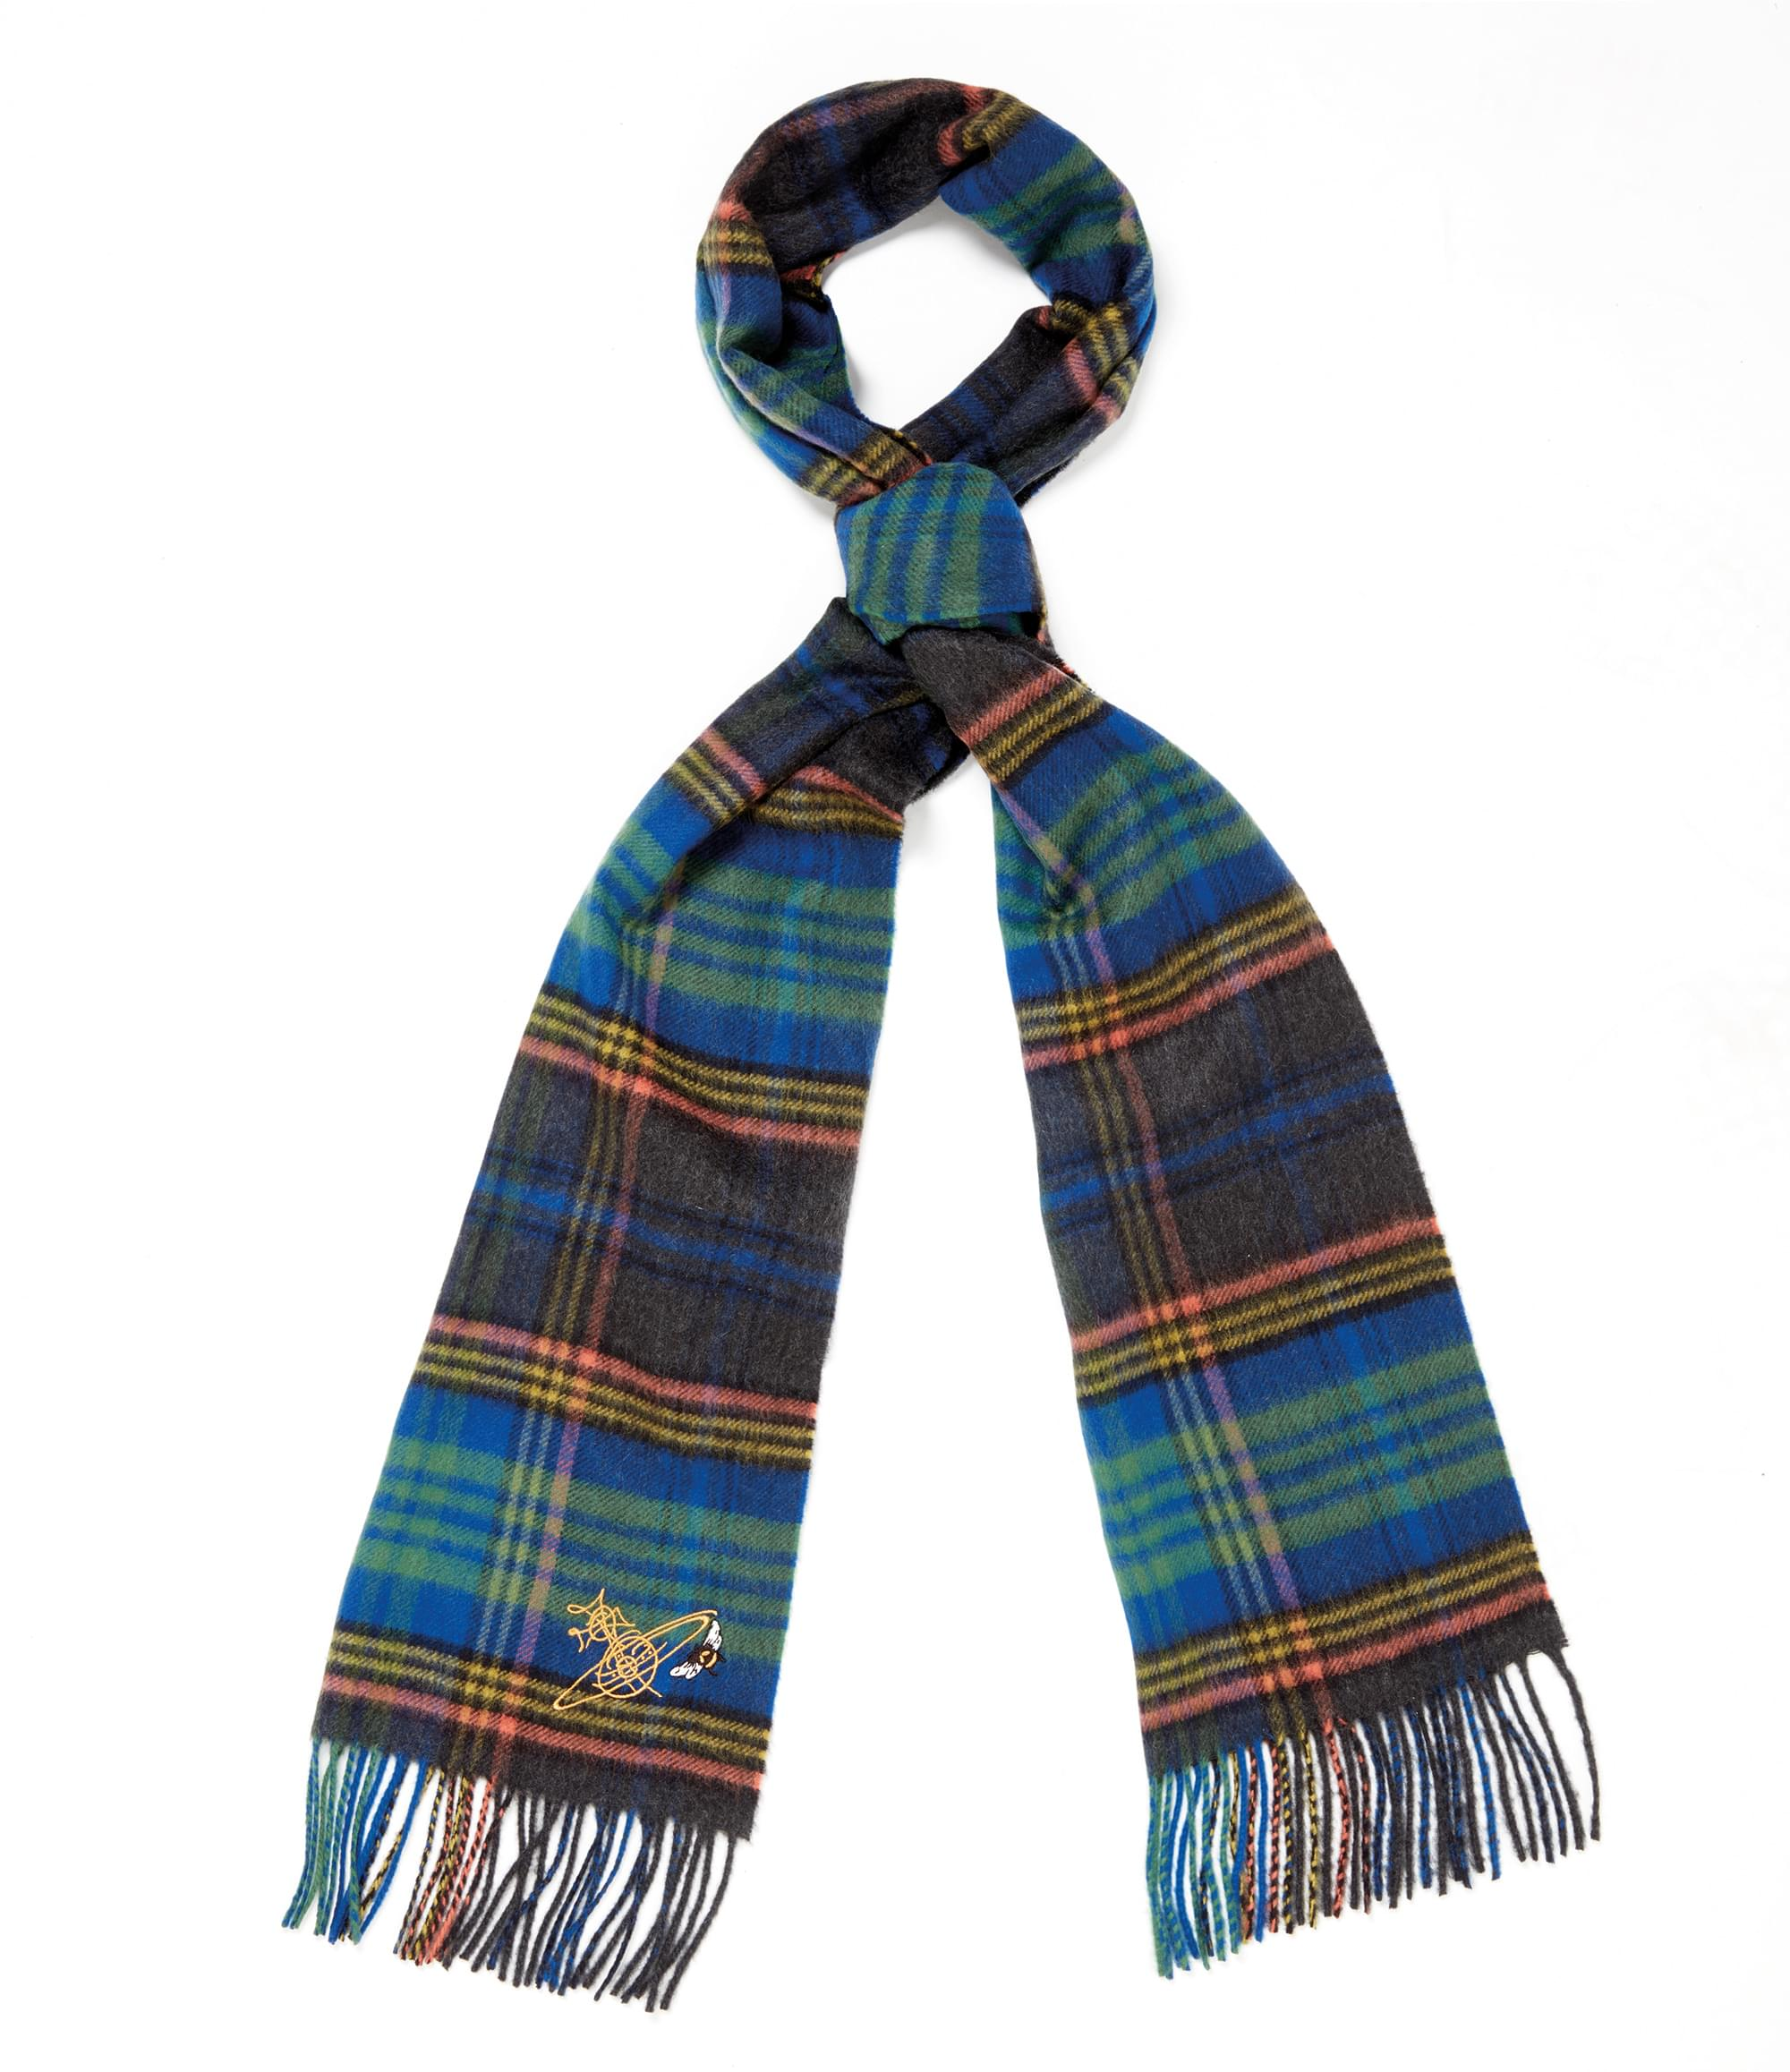 Vivienne Westwood Johnstons of Elgin Blue Tartan Scarf